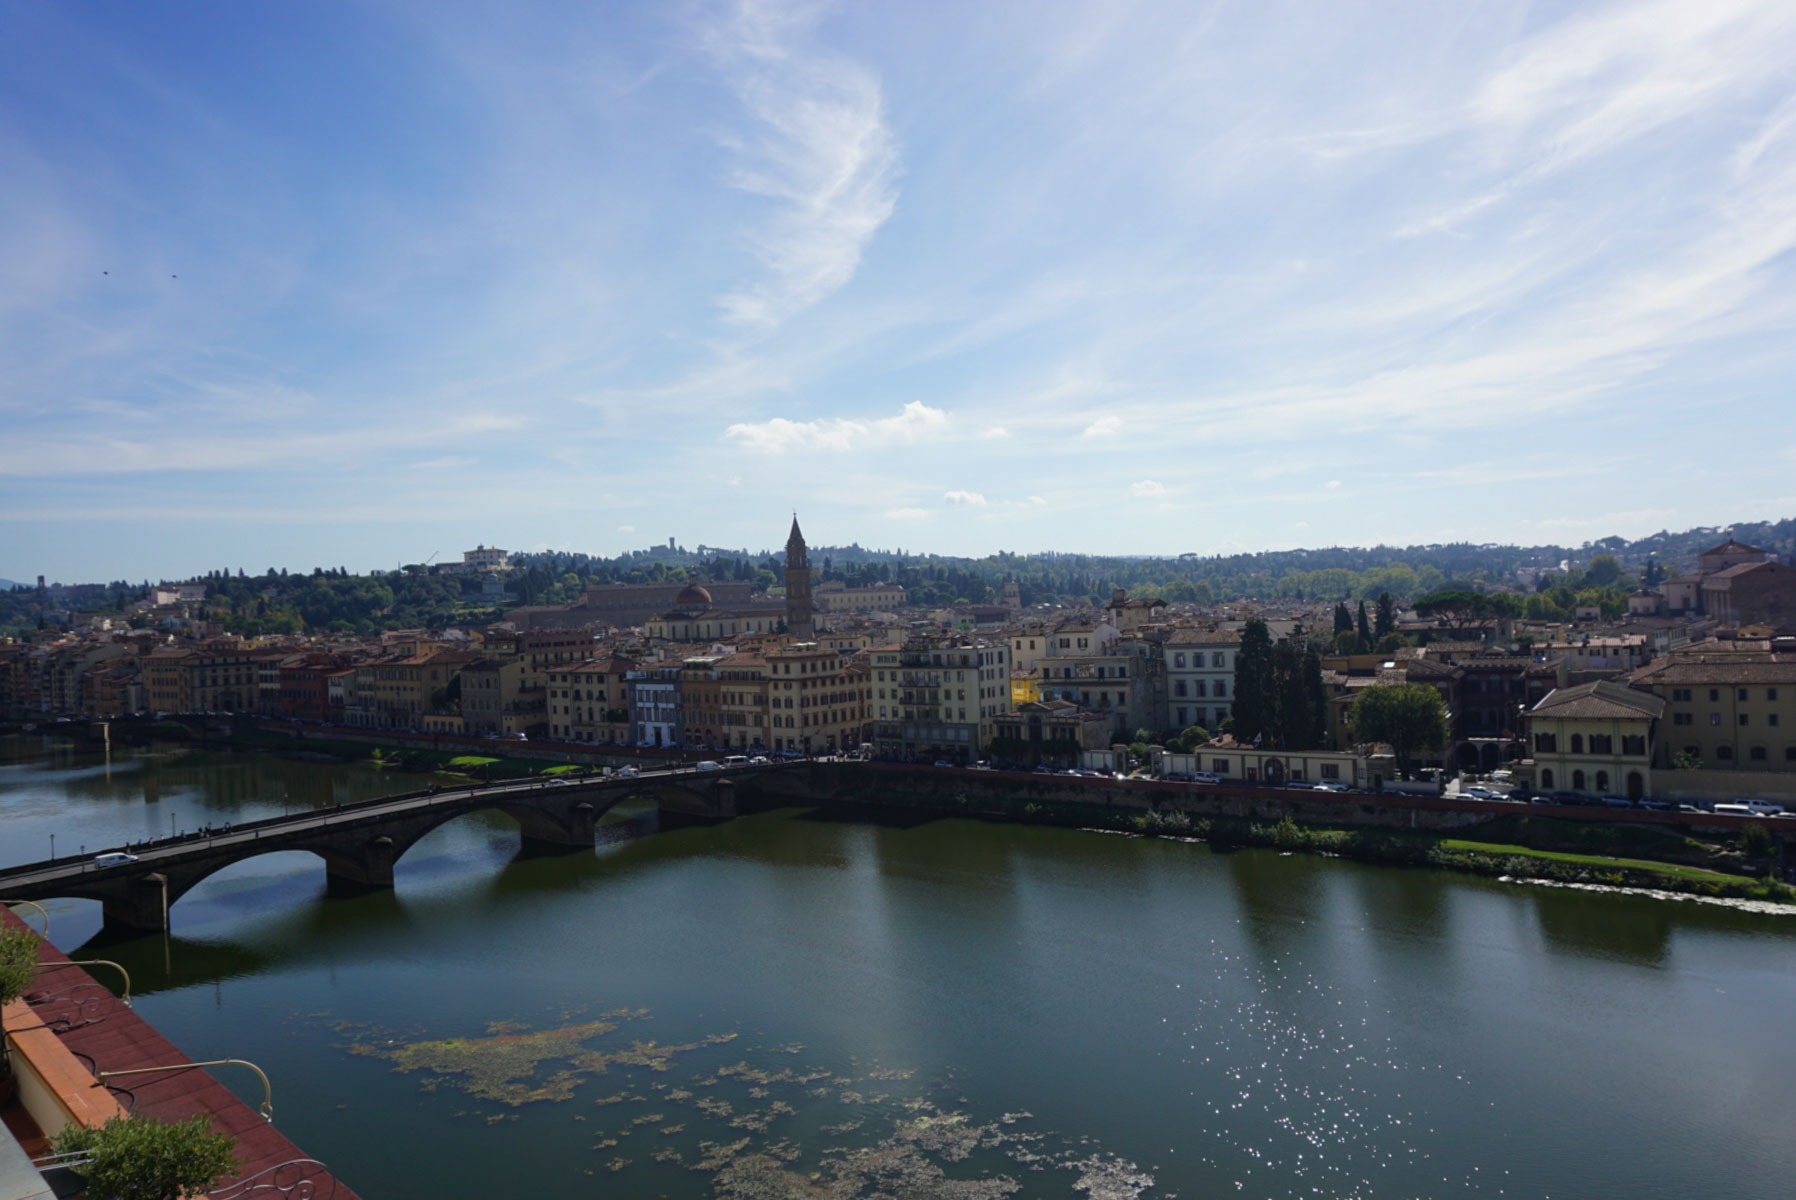 travel-to-italy-tips-with-Addie-Bell_Florence-Italy-9731.jpg